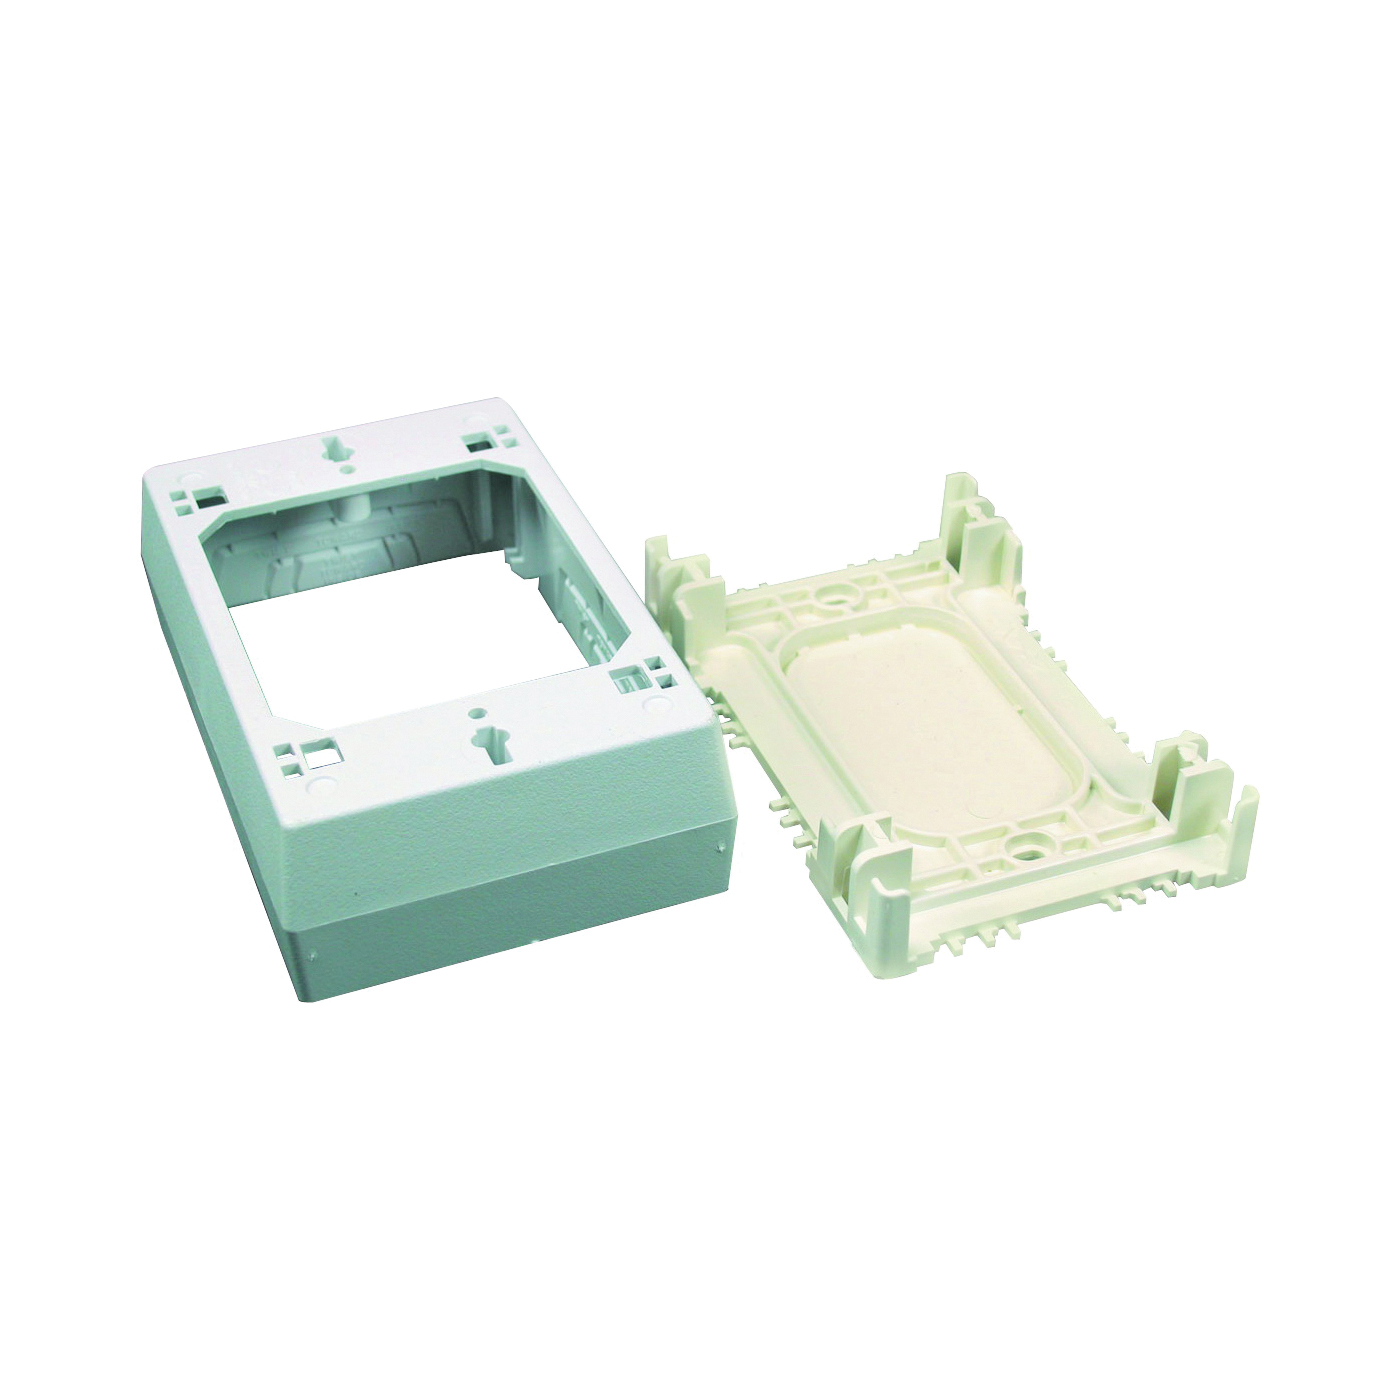 Picture of Legrand Wiremold NMW Series NMW3 Outlet Box, 1-Gang, Plastic, White, Wall Mounting